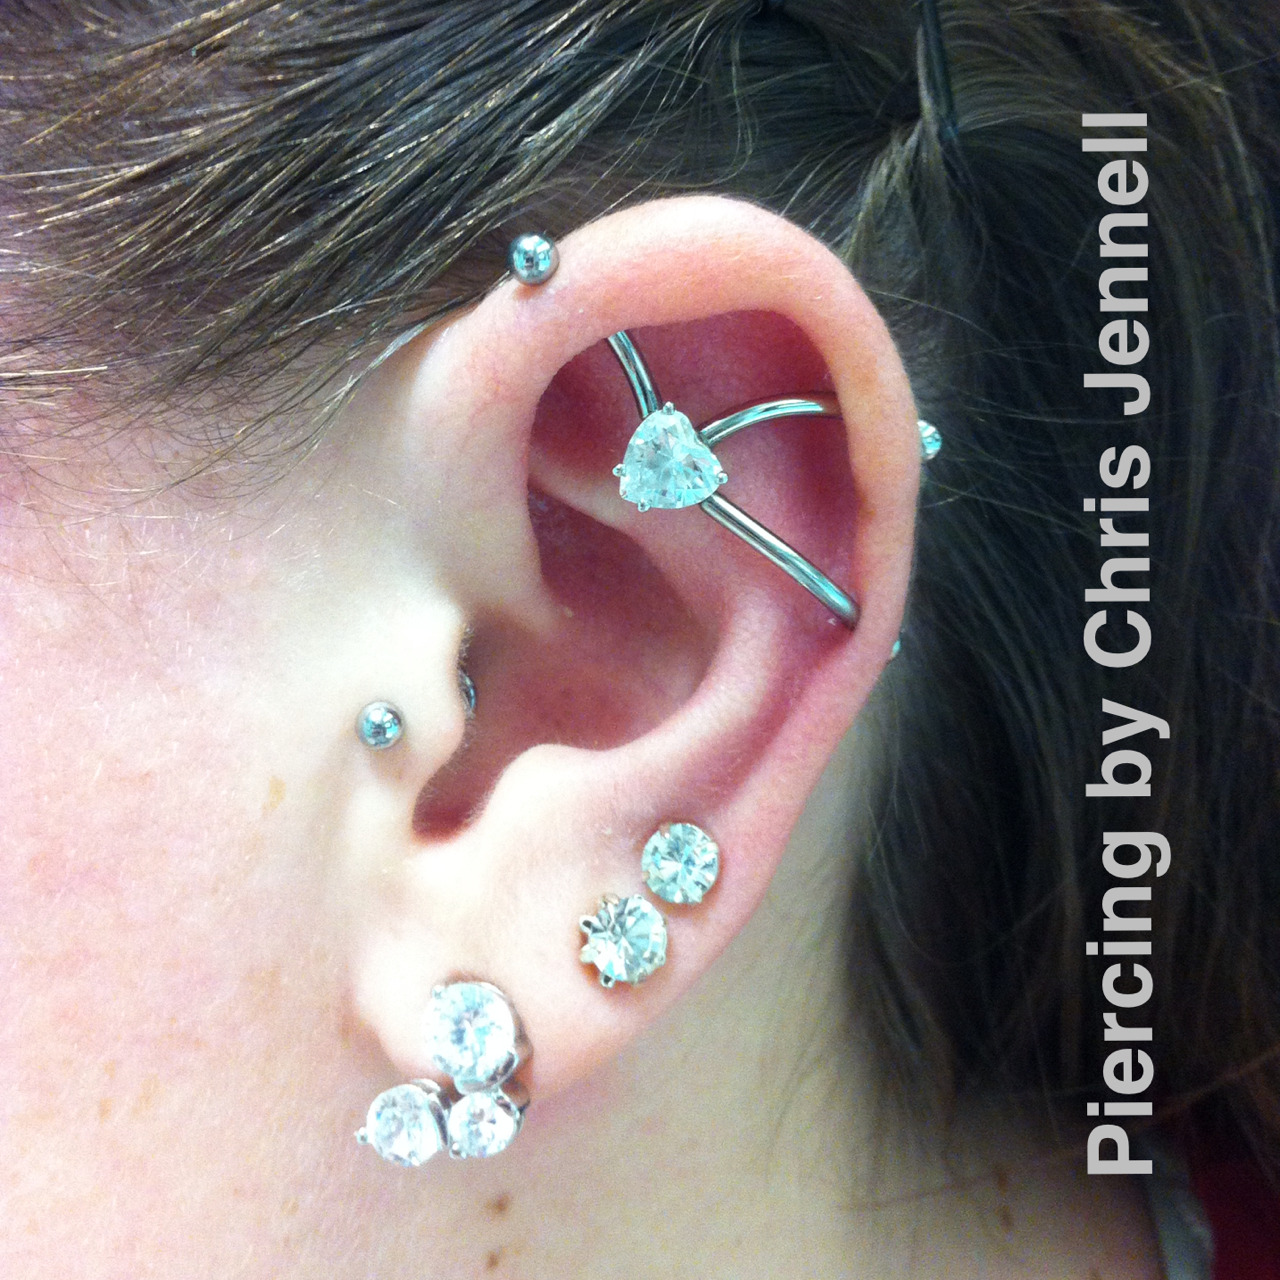 Custom white gold triple threaded heart cz from Body Vision Los Angeles.